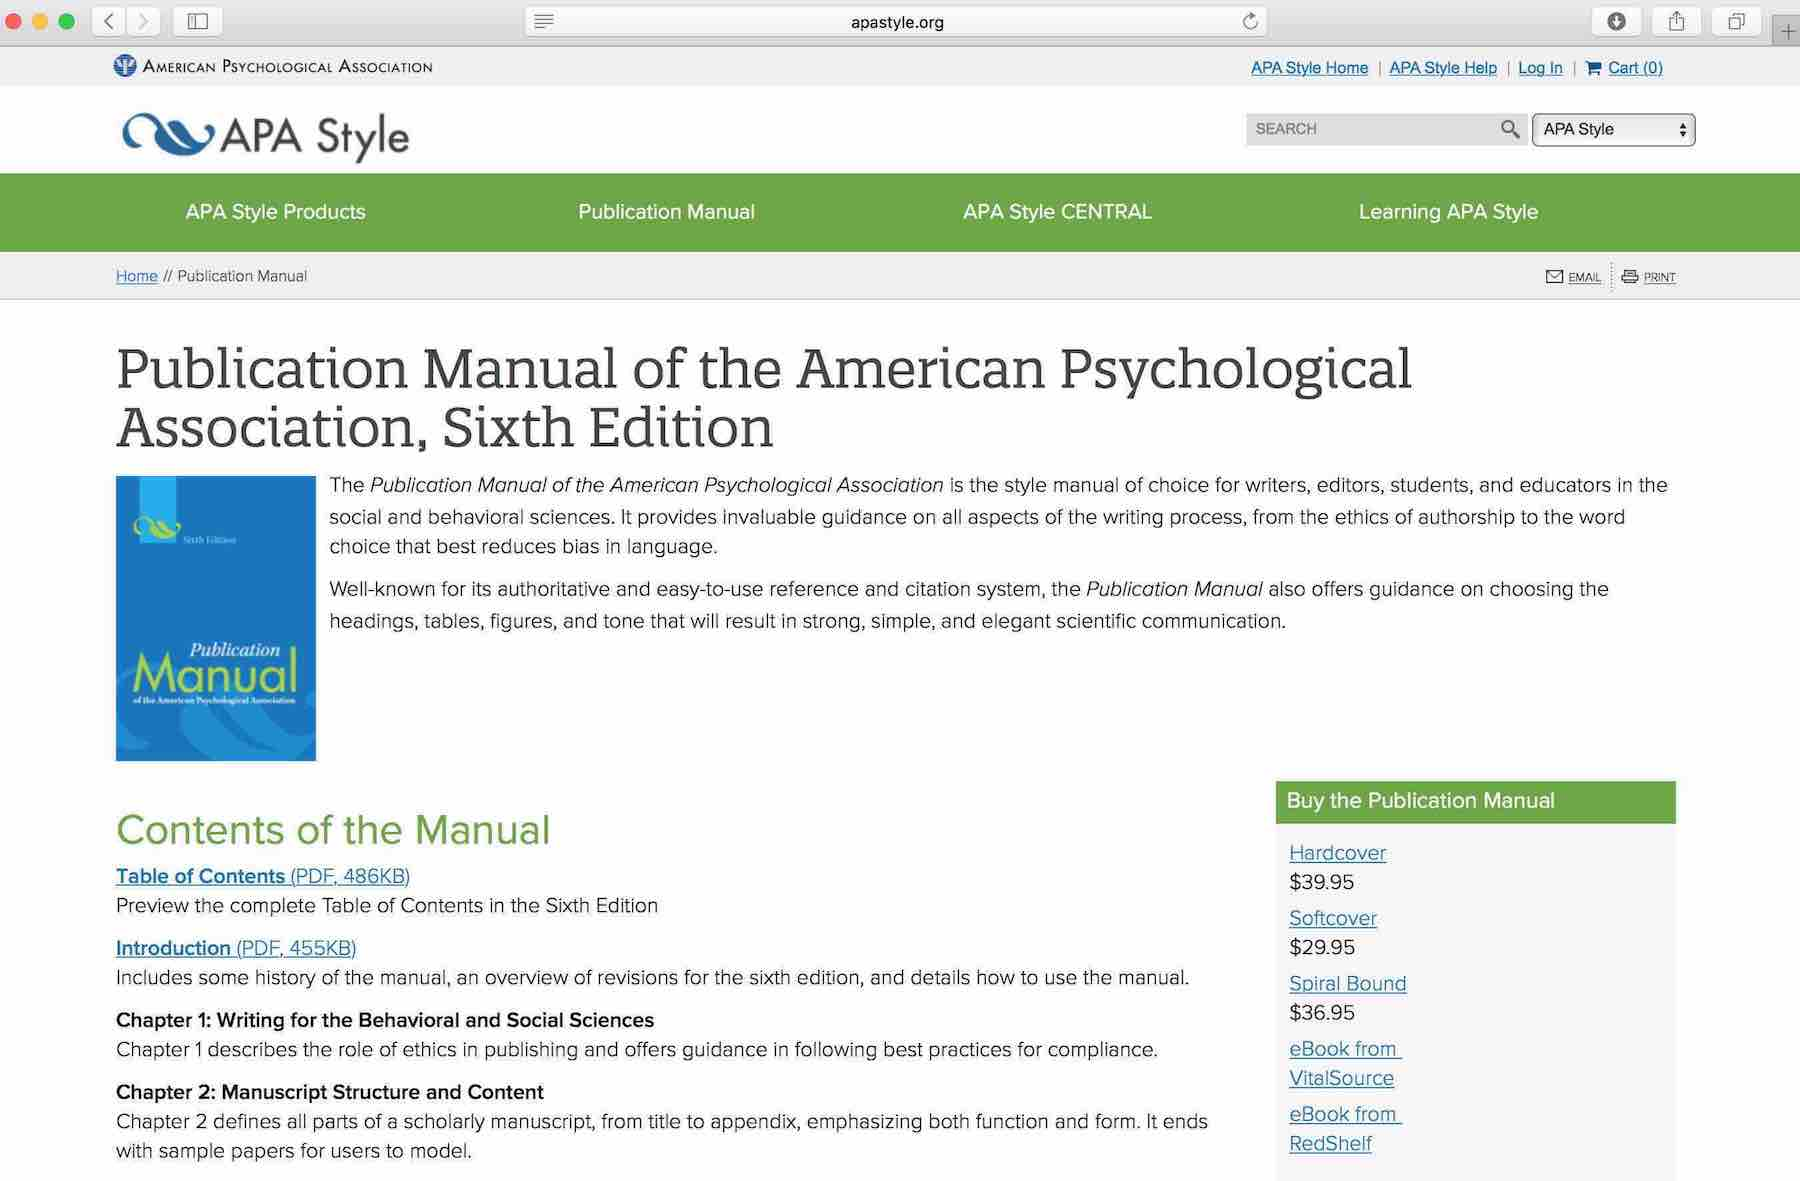 APA Stil - Die Inhalte des Publication Manual der American Psychological Association APA